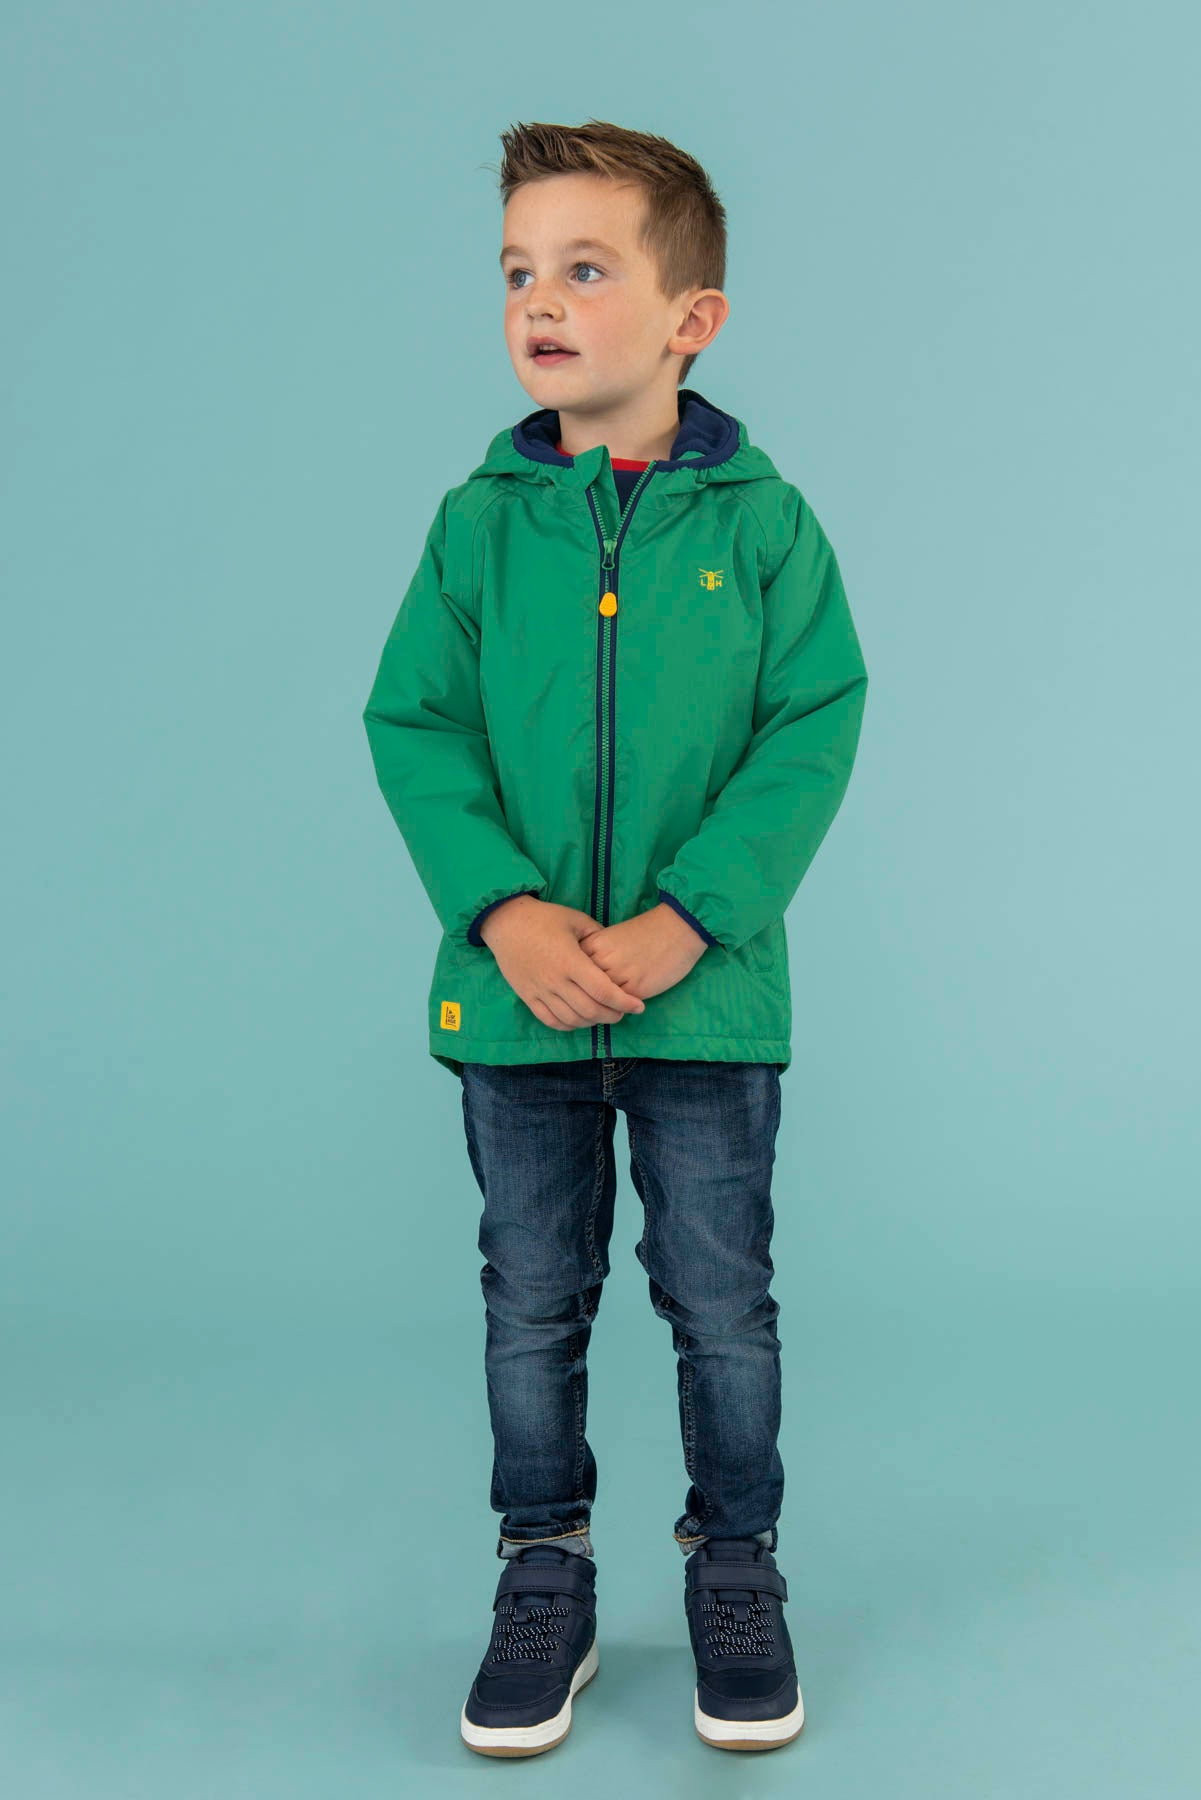 Lucas Coat - Green, Boy's Warm Raincoat | Lighthouse